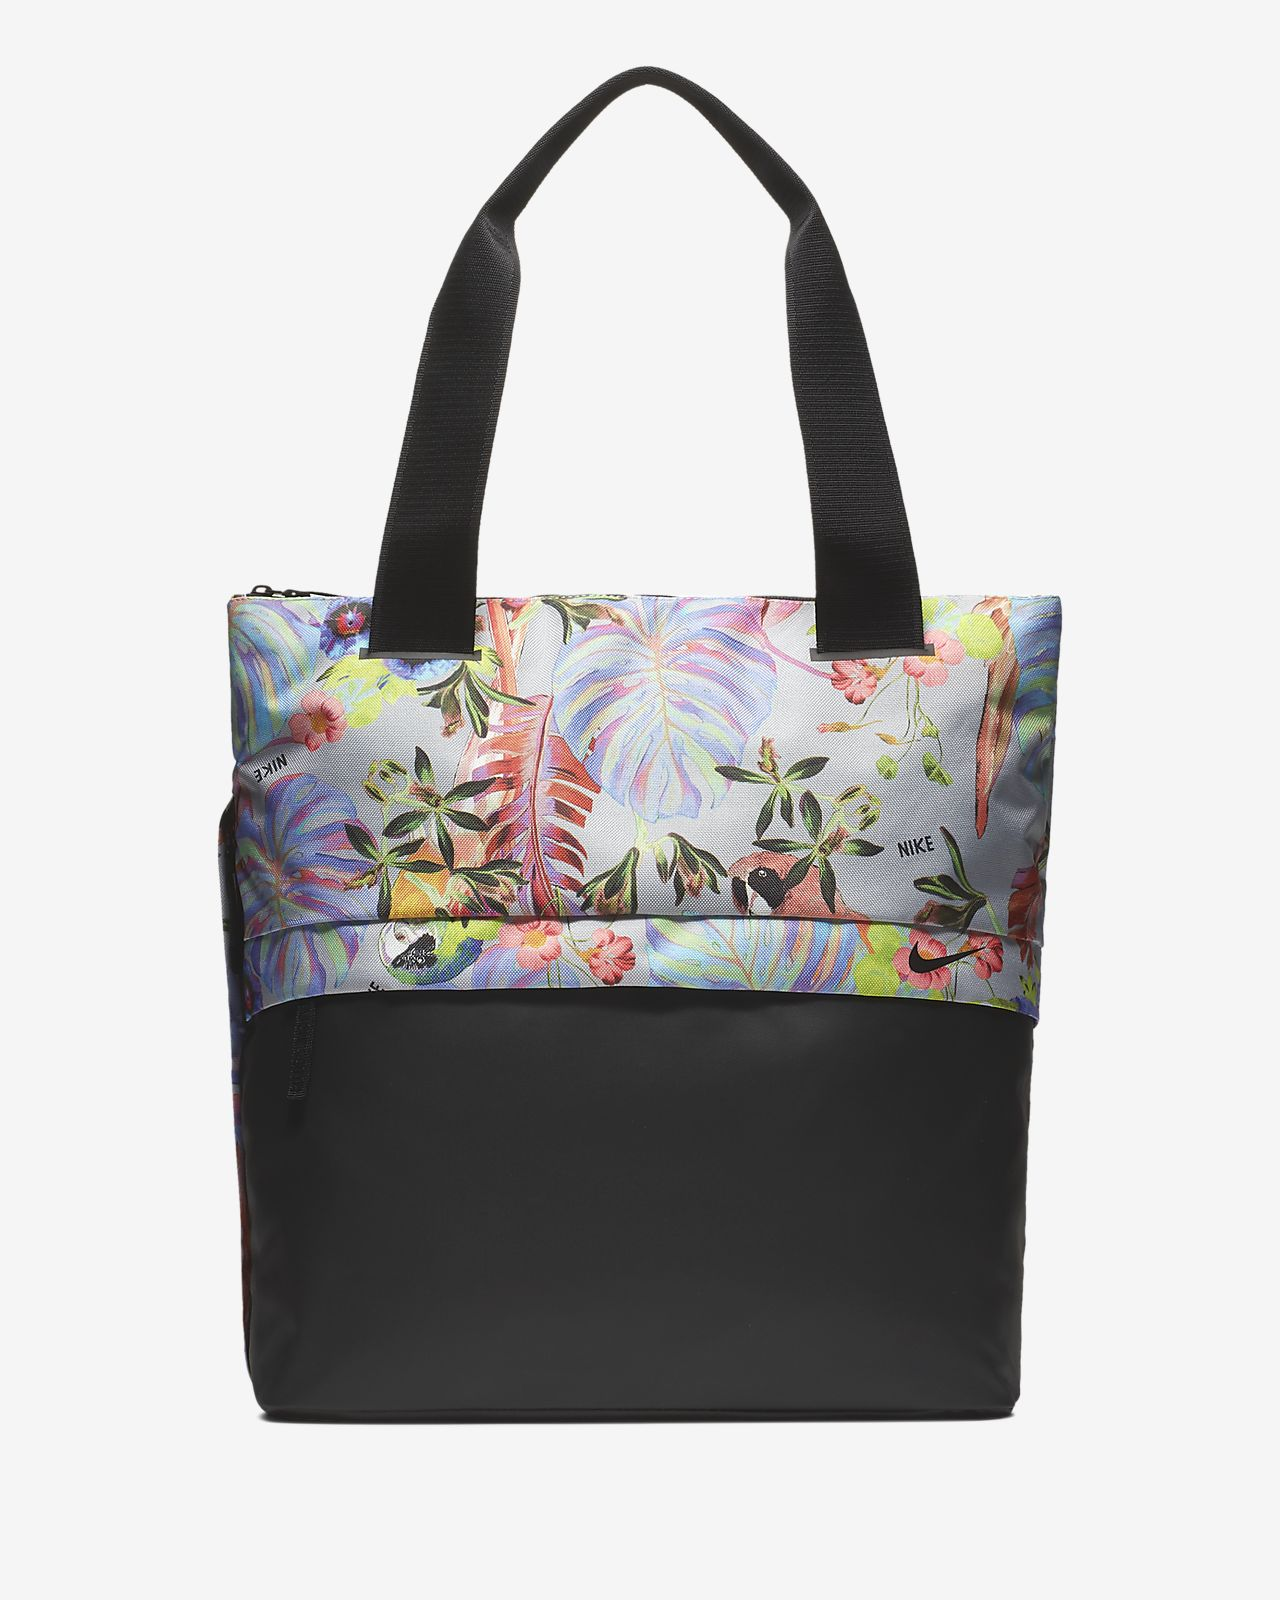 Nike Radiate Women's Printed Training Tote Bag